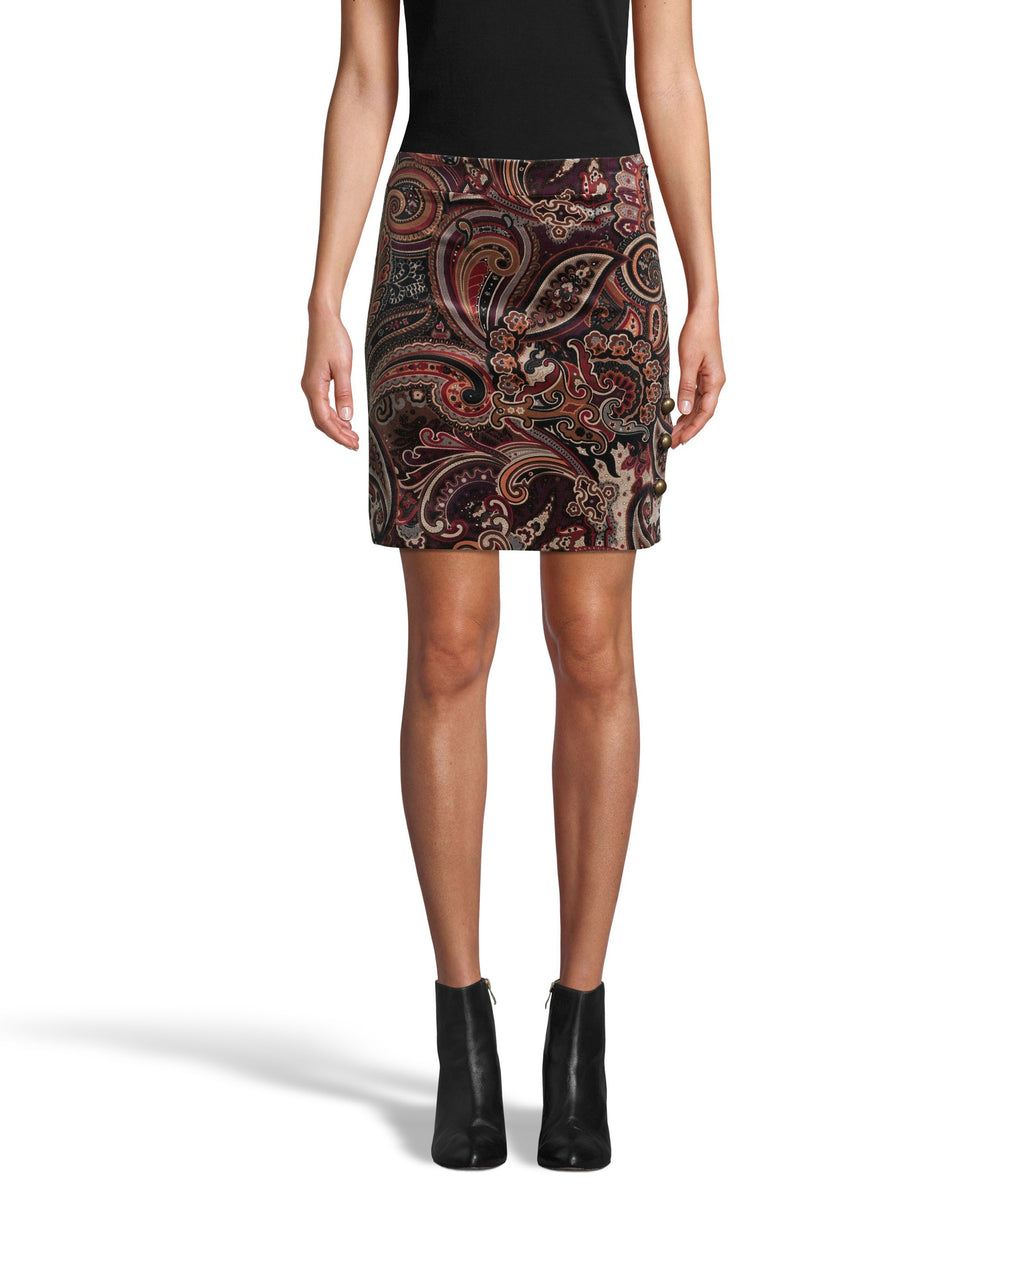 CS18144 - PAISLEY VELVETEEN MINI SKIRT - bottoms - skirts - This classic mini skirt silhoeutte gets an update in velvet paisley. This sophisticated style has a concealed side zipper for closure. Add 1 line break Stylist tip: Pair with tights and black boots for colder fall months.